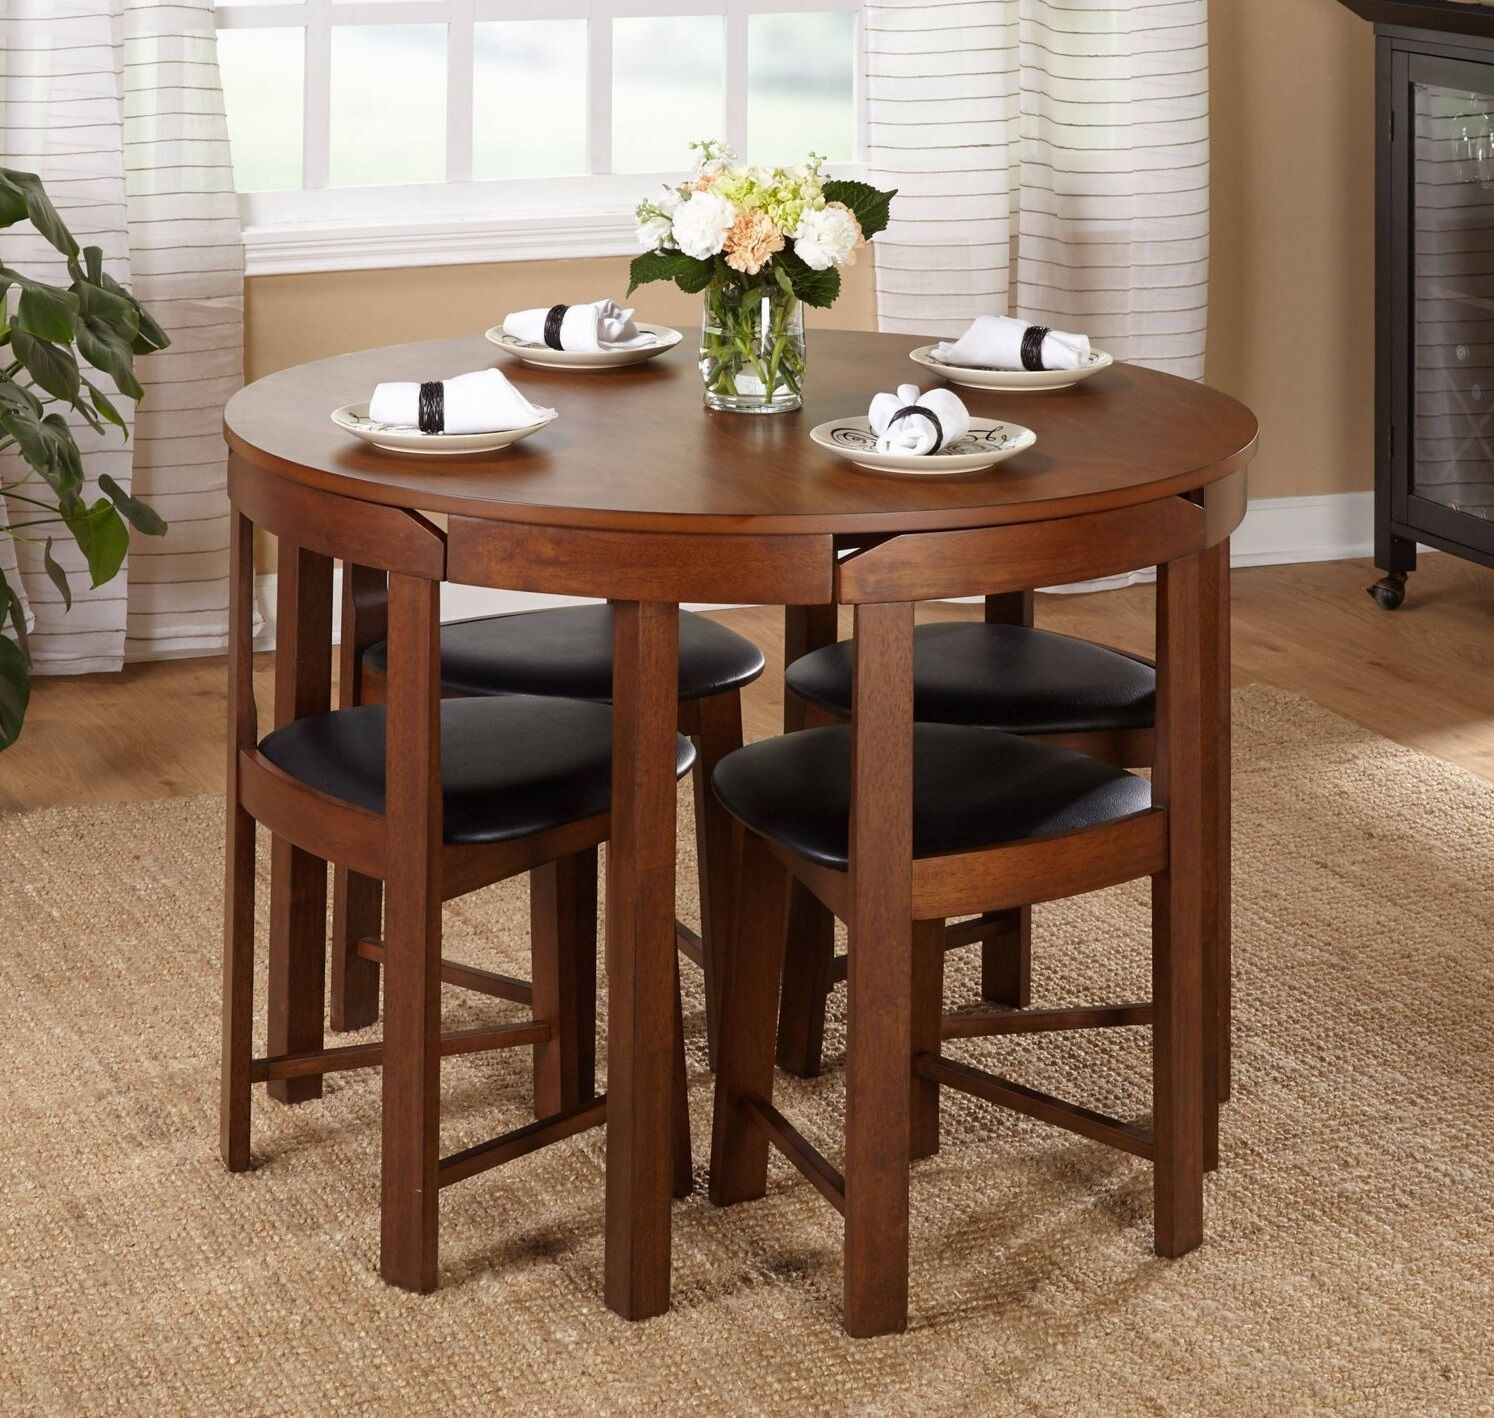 Modern 5pc Dining Table Set Kitchen Dinette Chairs Breakfast Bar Nook Patio N